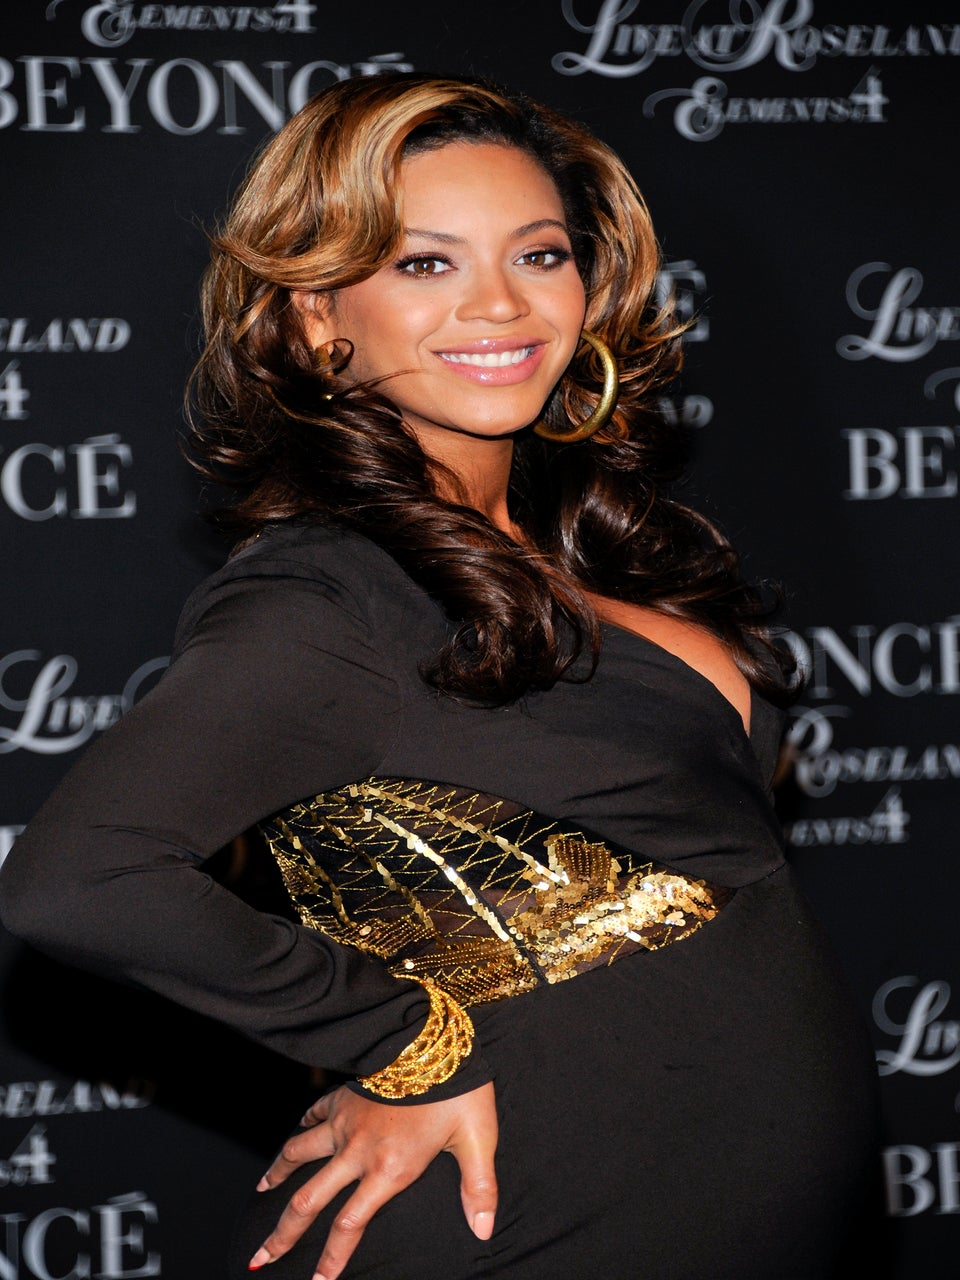 Real Talk: Beyonce's Baby Is Just Like Yours